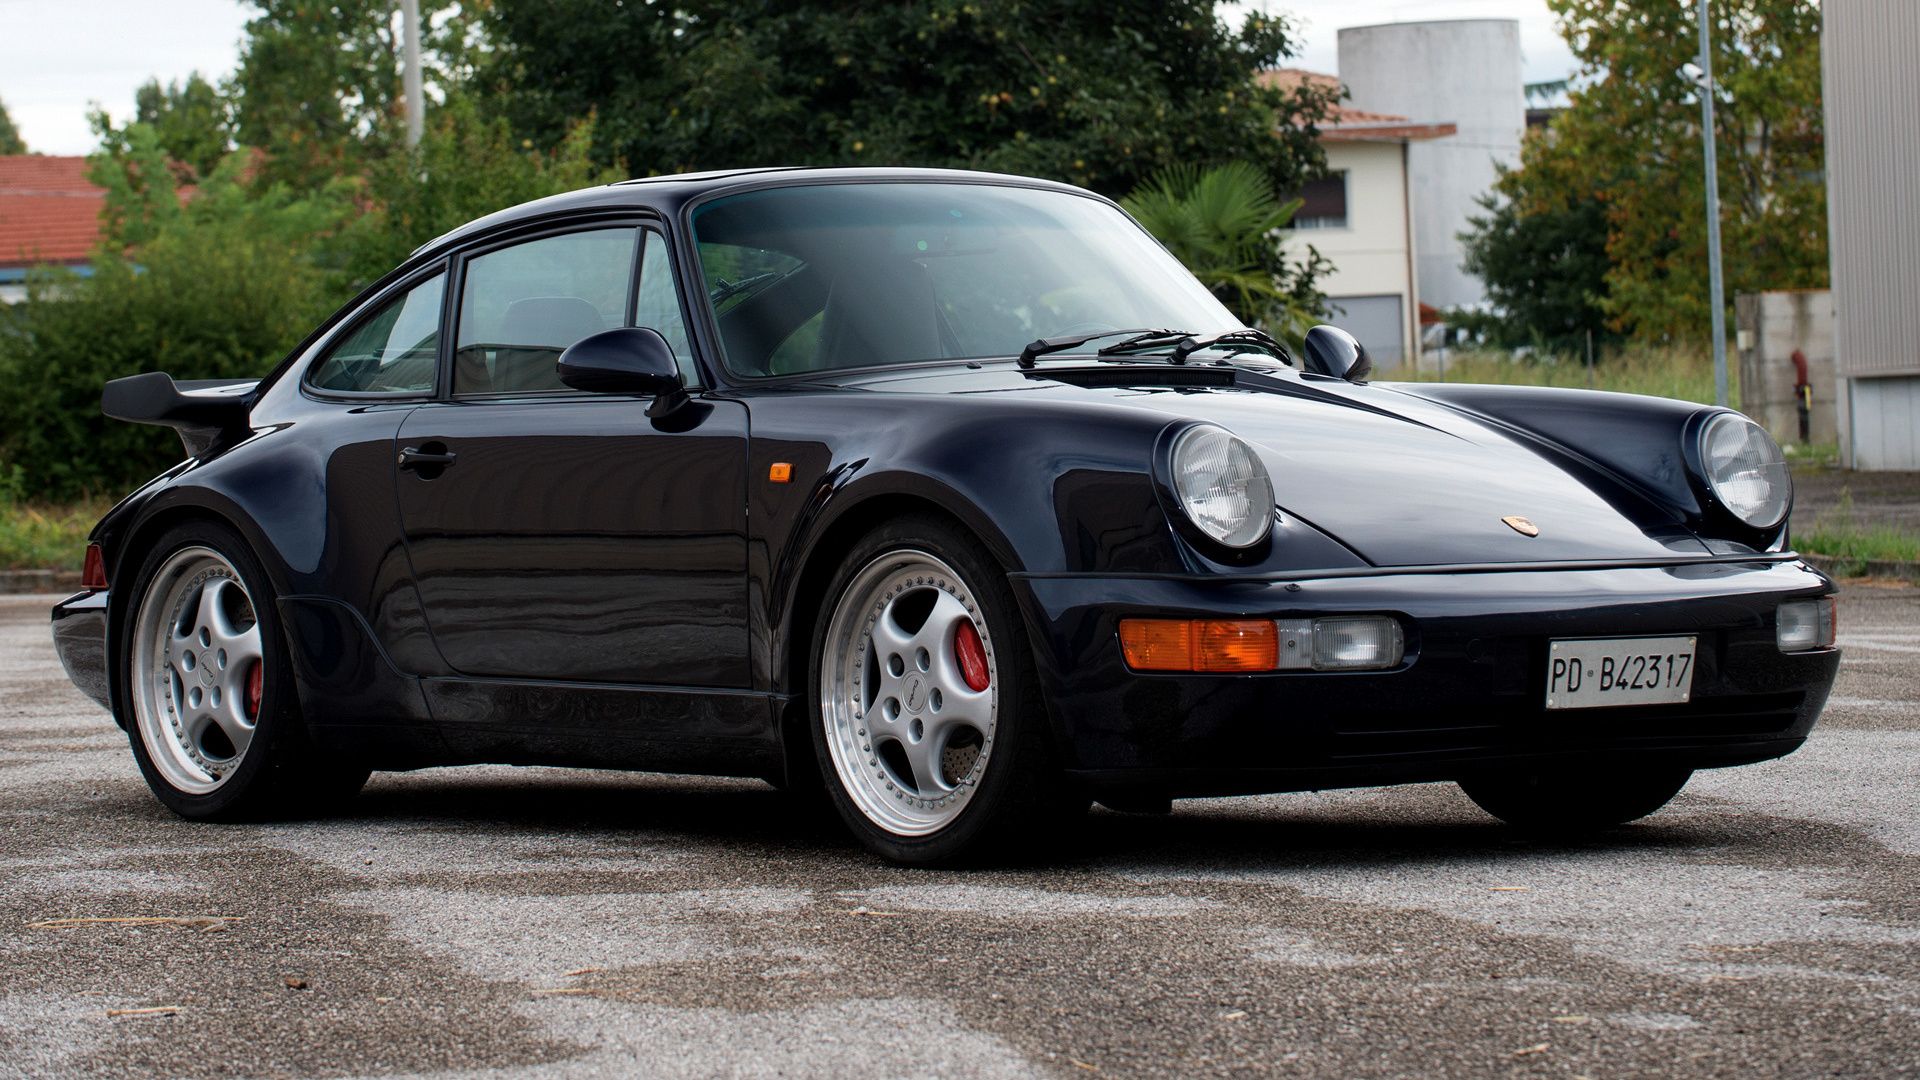 Turbo Car Wallpaper Hd Porsche 911 Turbo 1990 Wallpapers And Hd Images Car Pixel